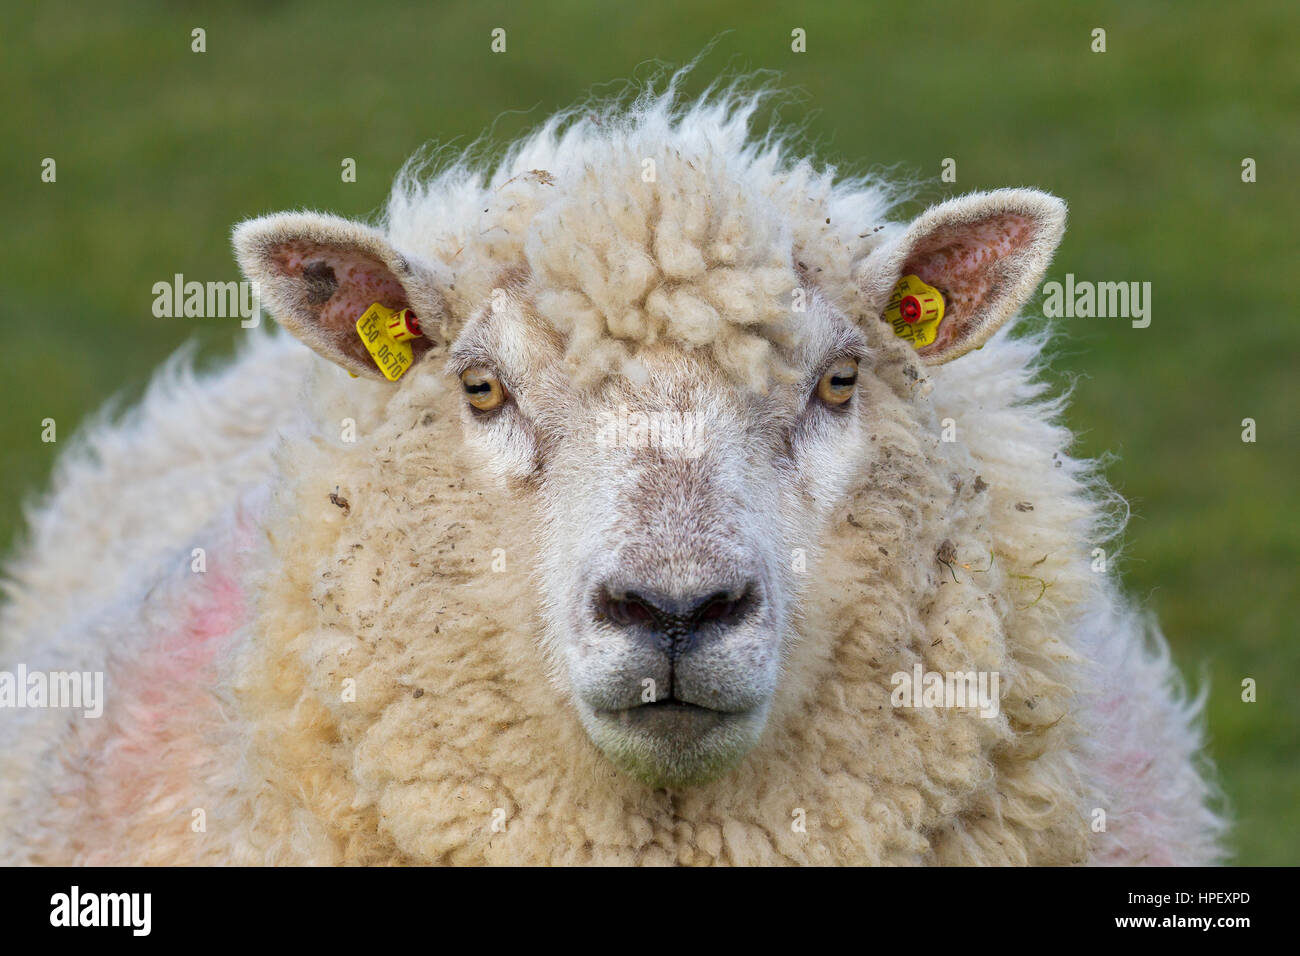 Close up of tagged white sheep ewe with two yellow eartags / ear marks Stock Photo